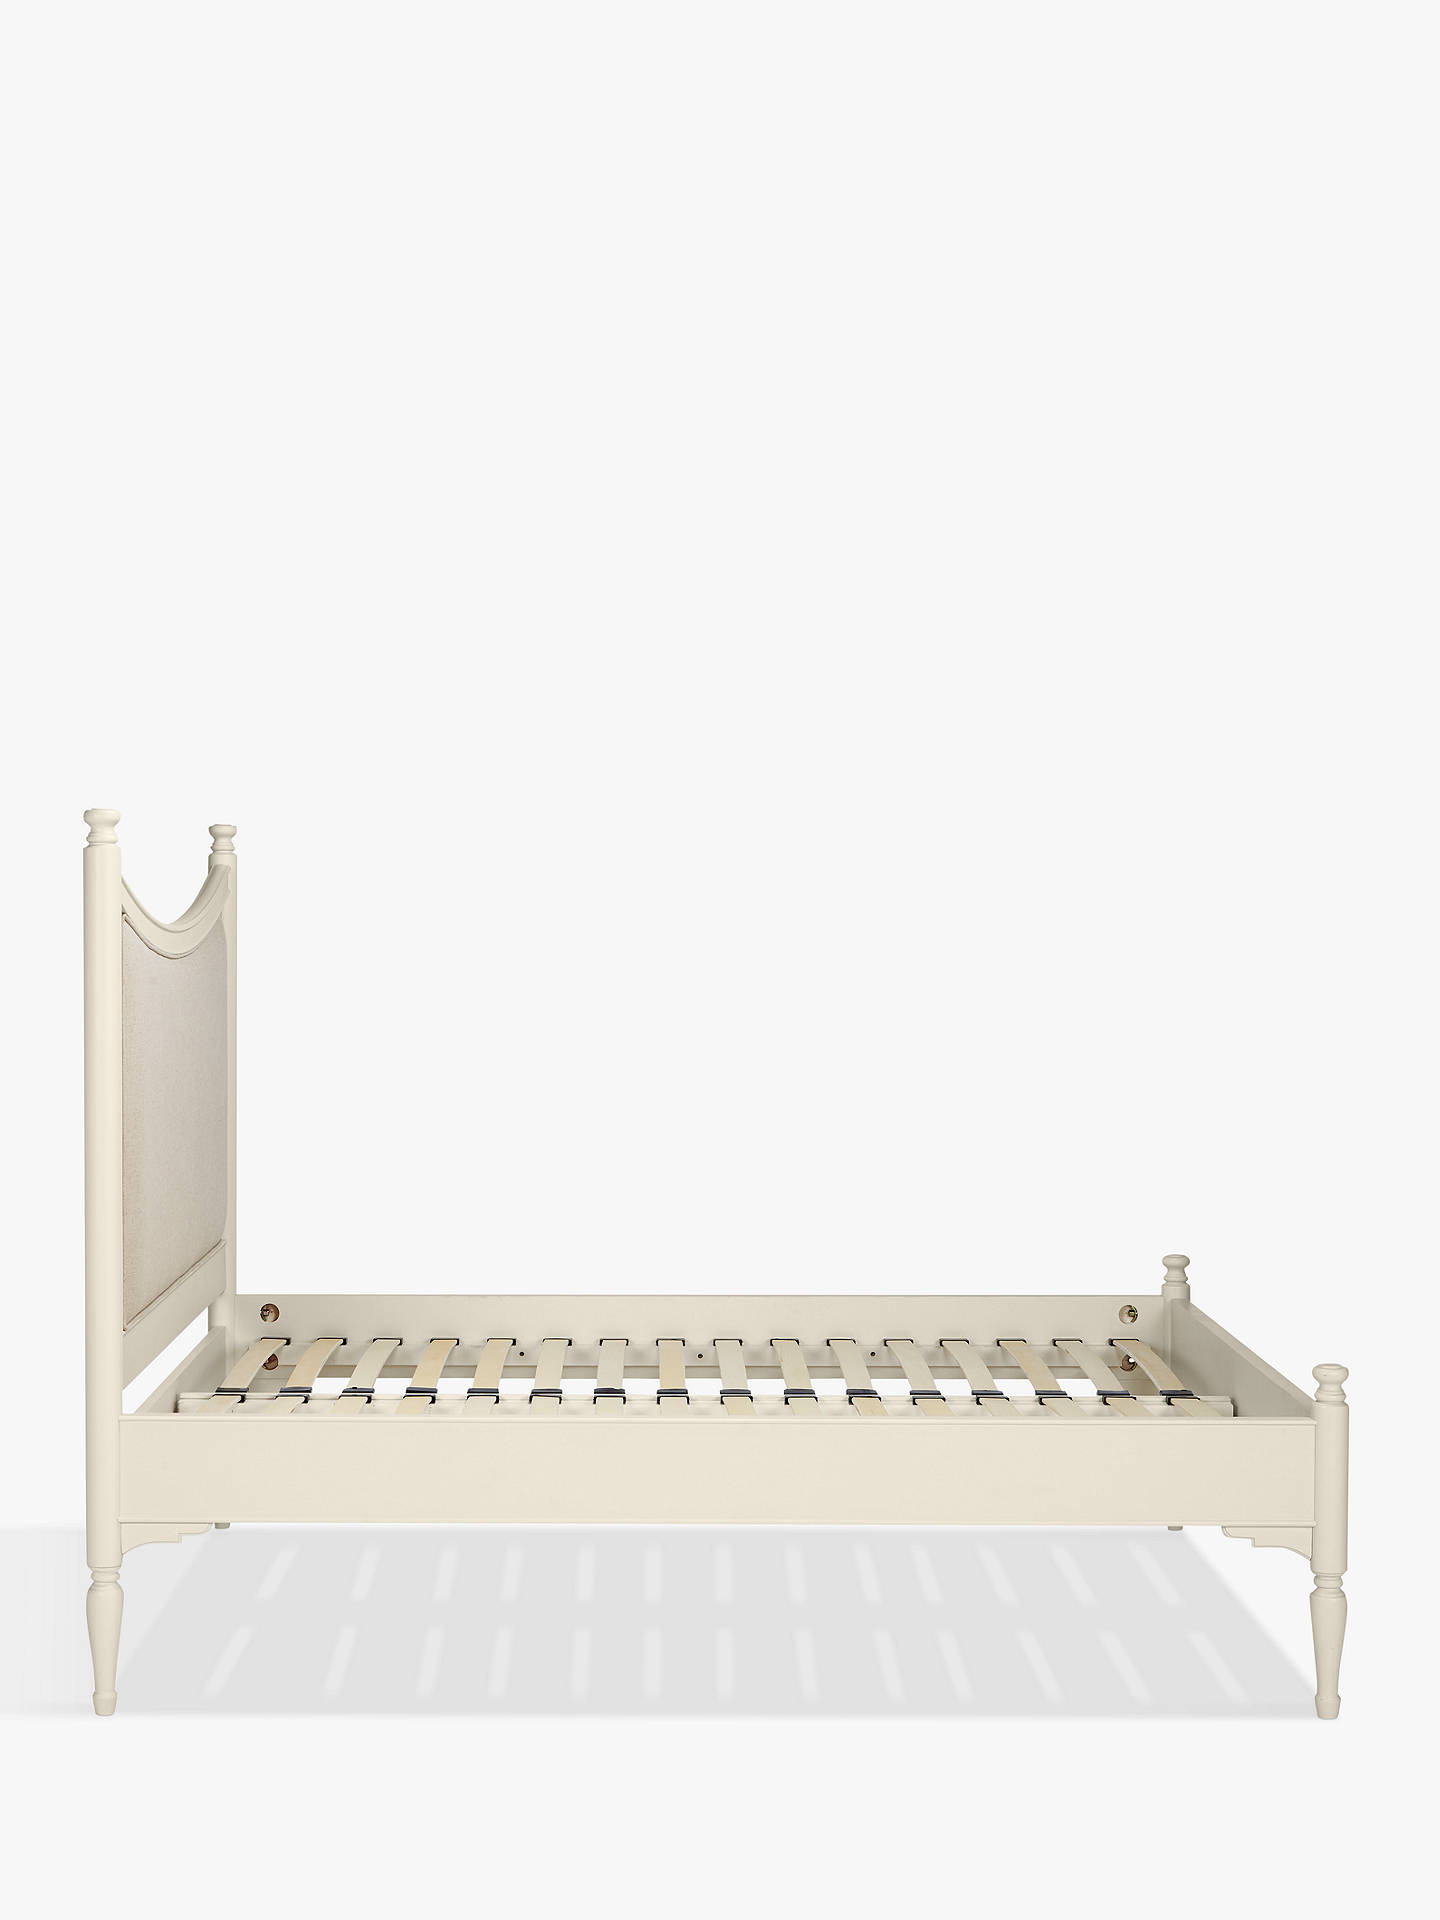 BuyJohn Lewis & Partners Ivybridge Low End Bed Frame, Super King Size Online at johnlewis.com